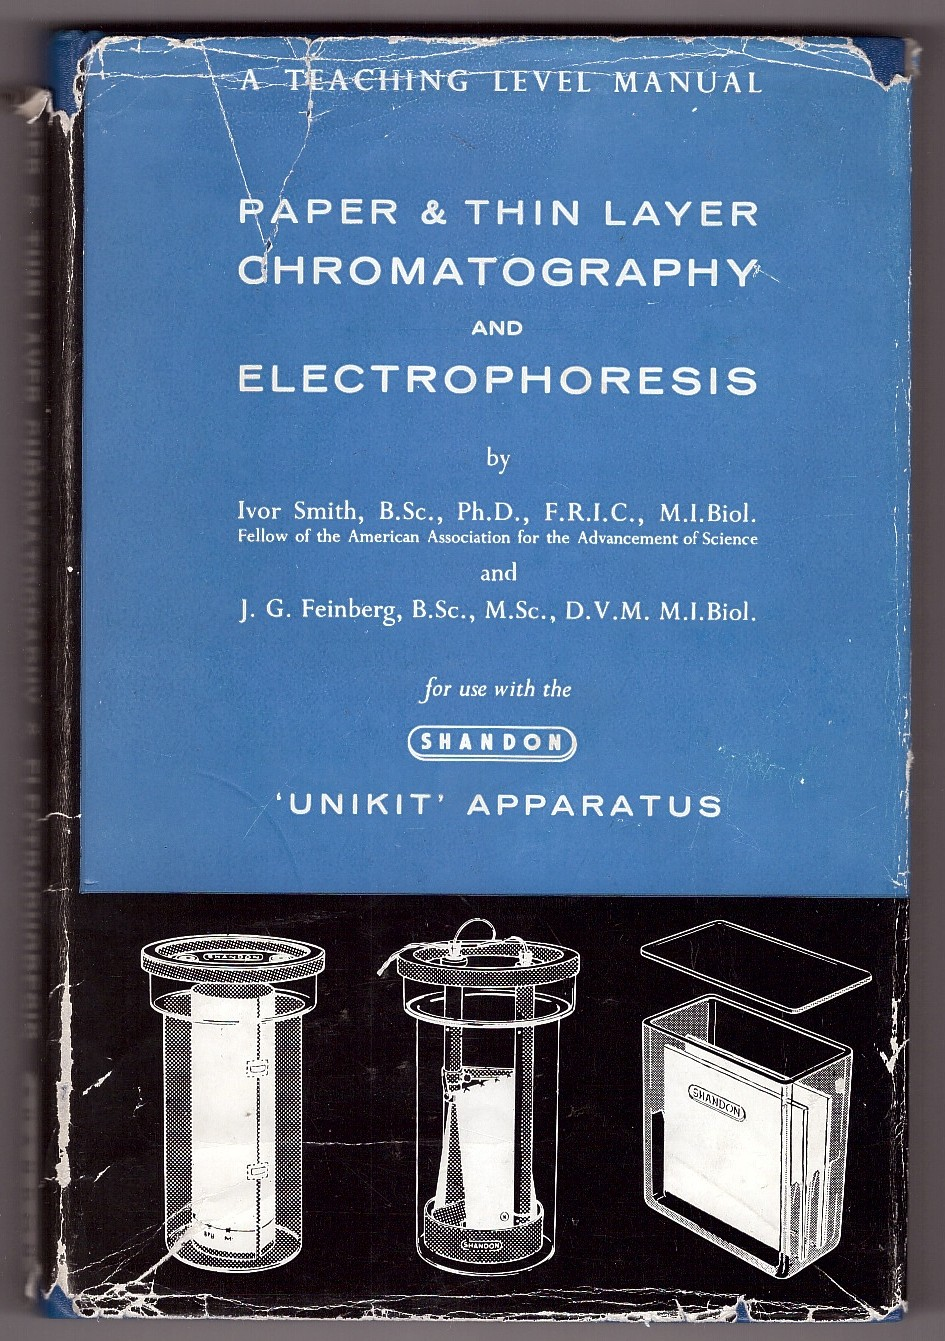 Image for Paper & Thin Layer Chromatography and Electrophoresis A Teaching Level Manual